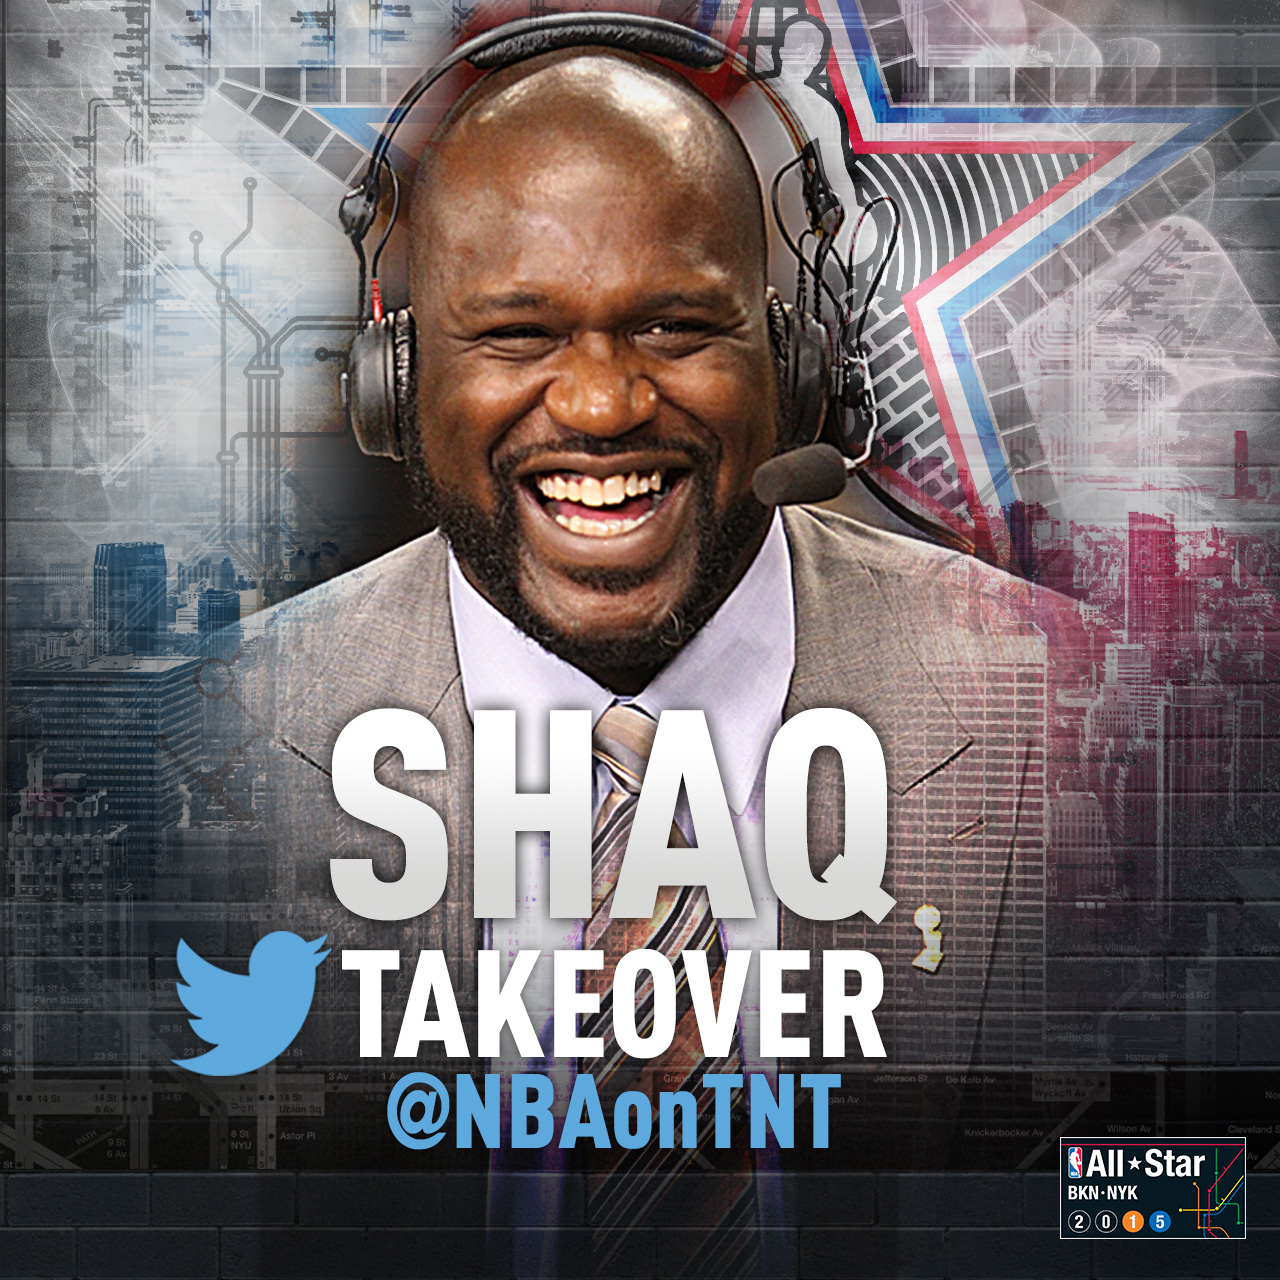 Shaq Twitter Takeover